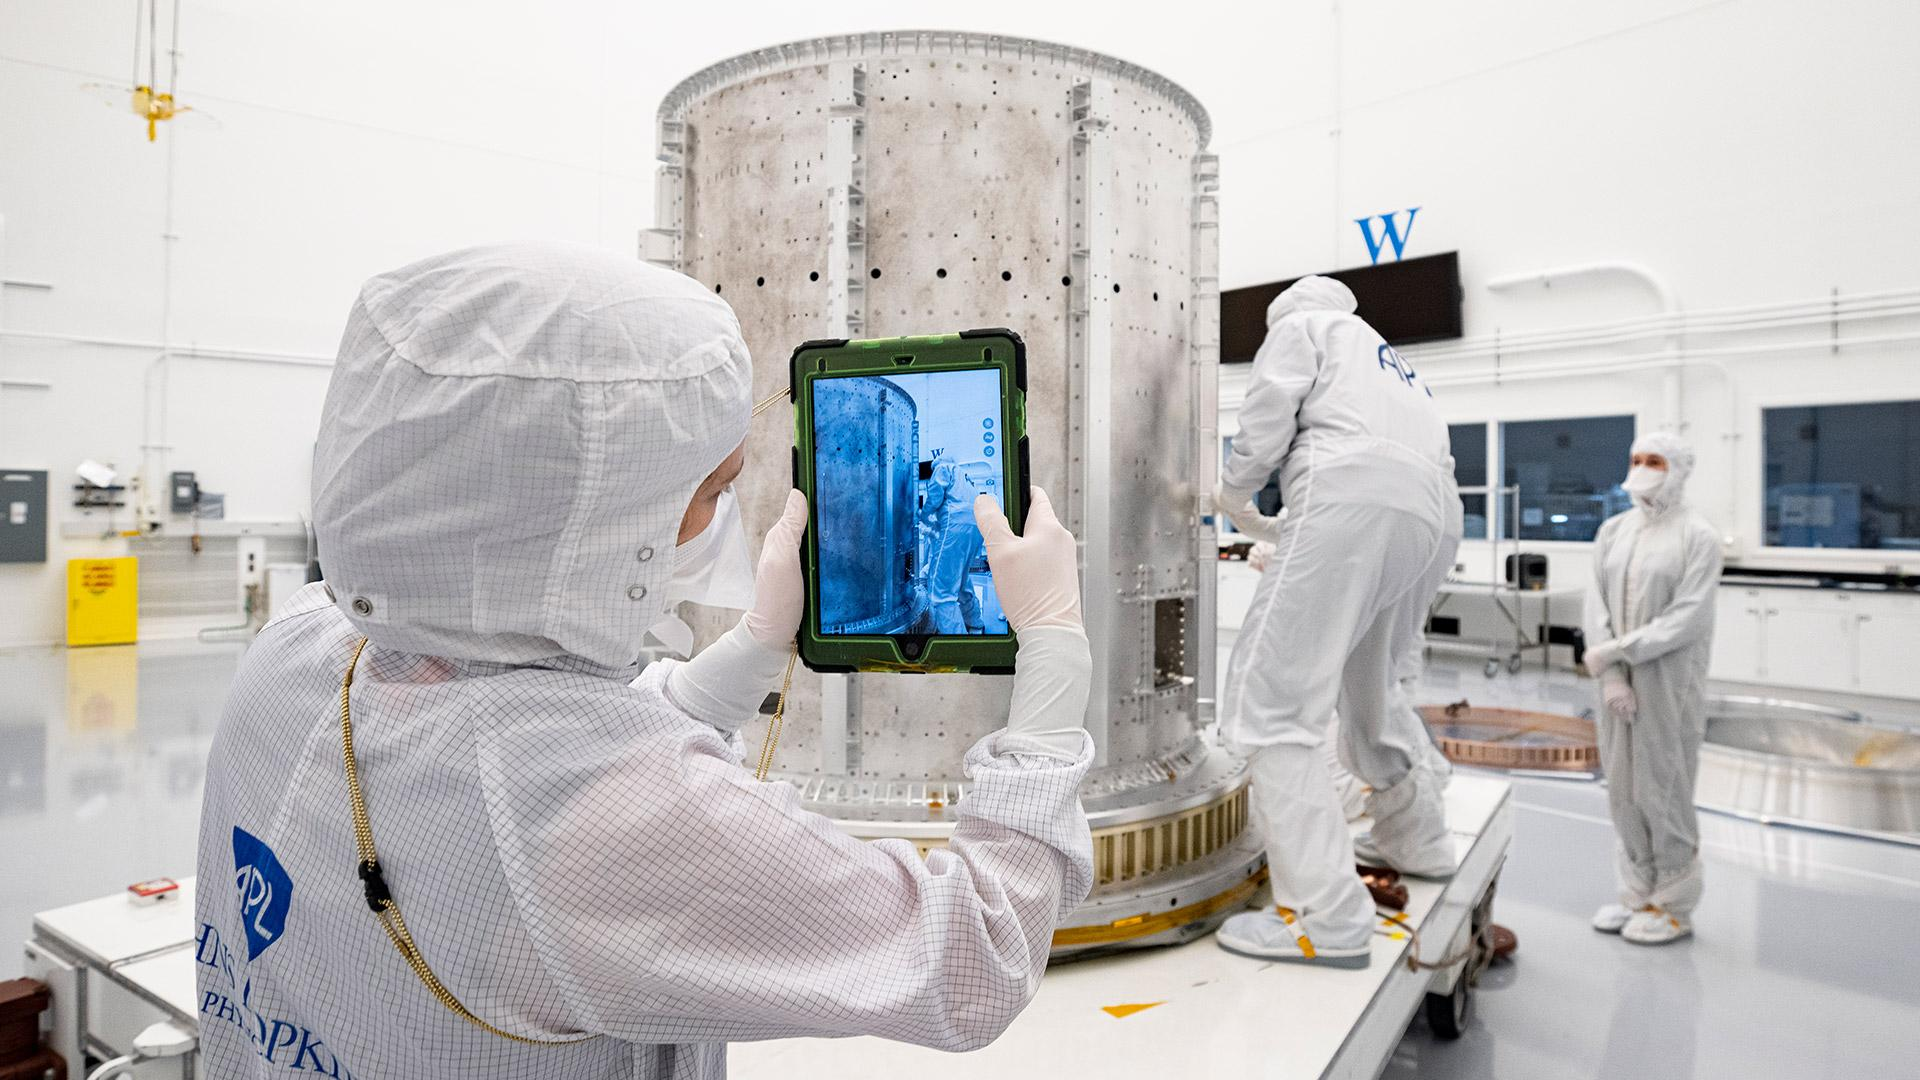 Three APL engineers in white clean room suits, one taking a photo with an iPad of another working on a large metal tank